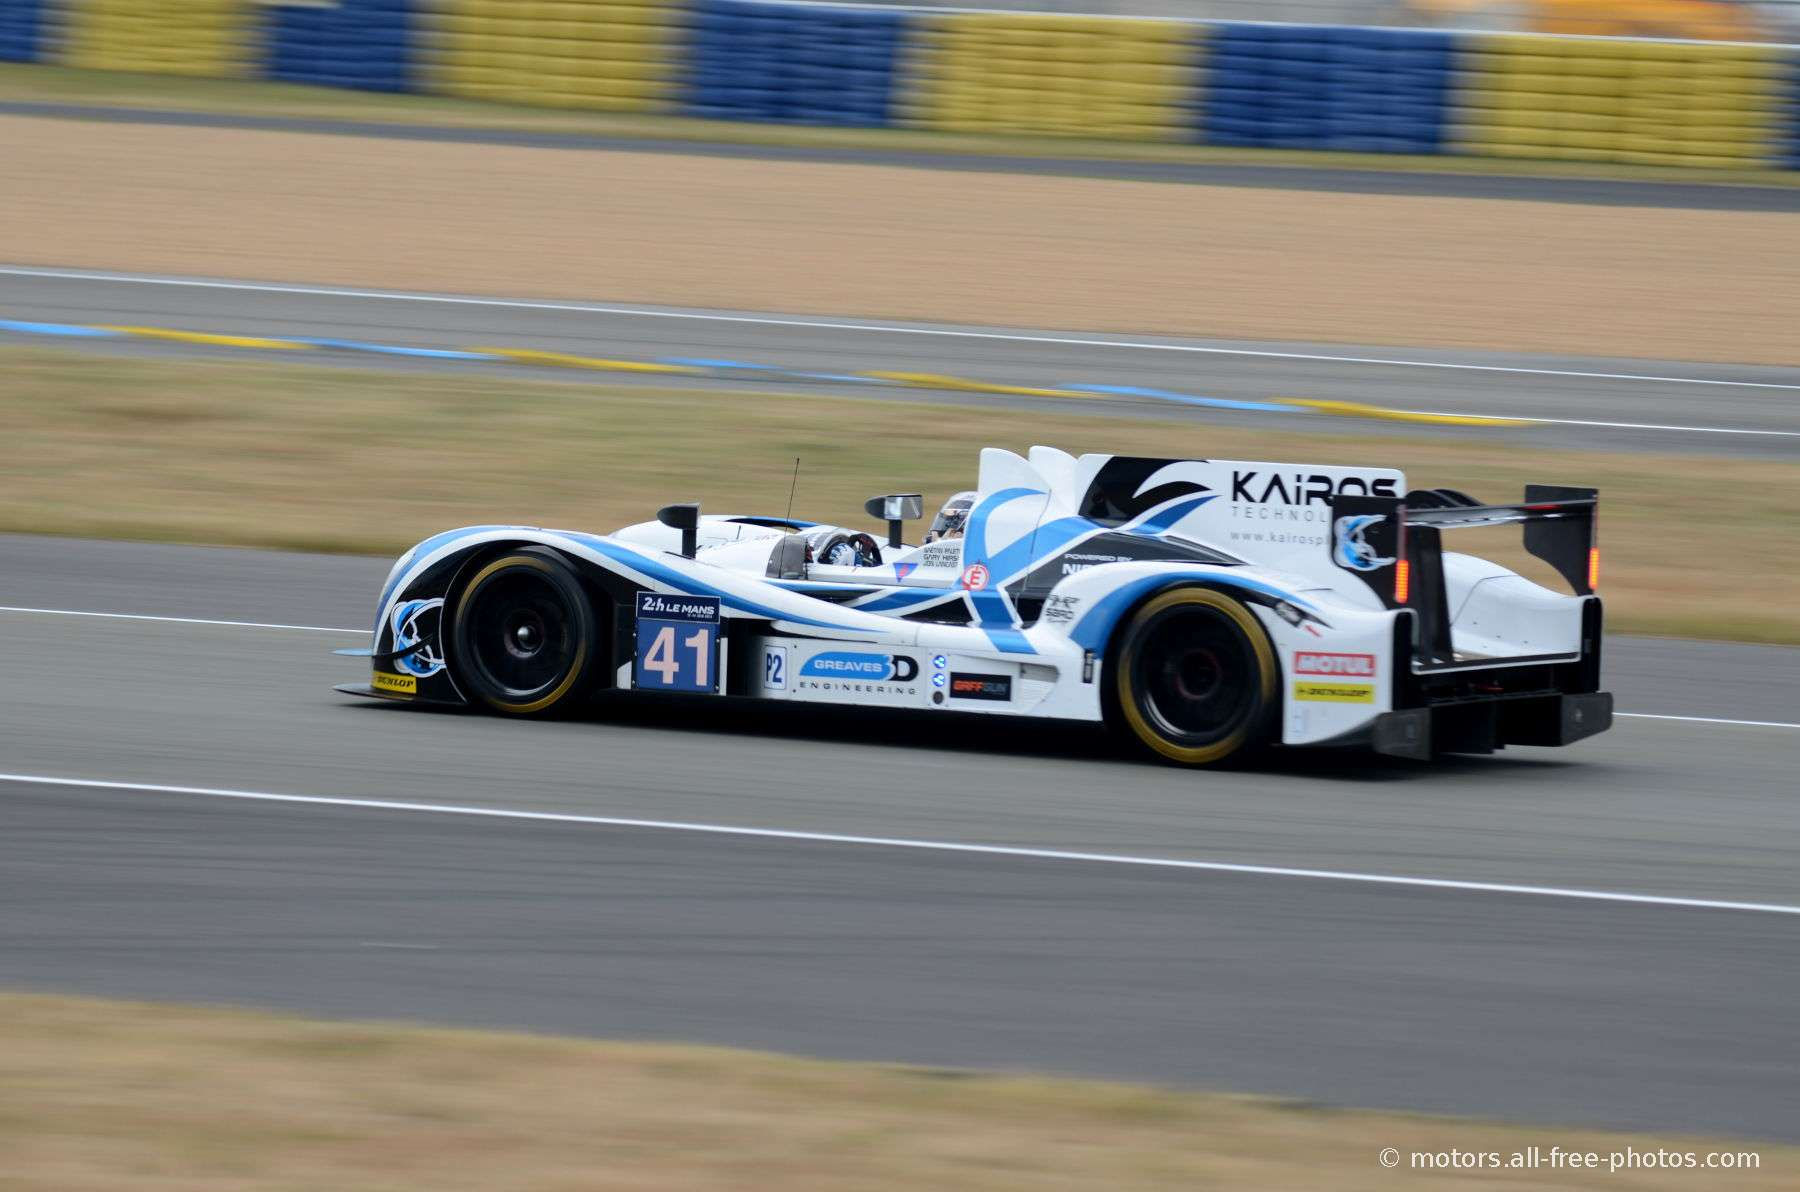 Gibson 01 5S-Nissan - Team Greaves Motorsport